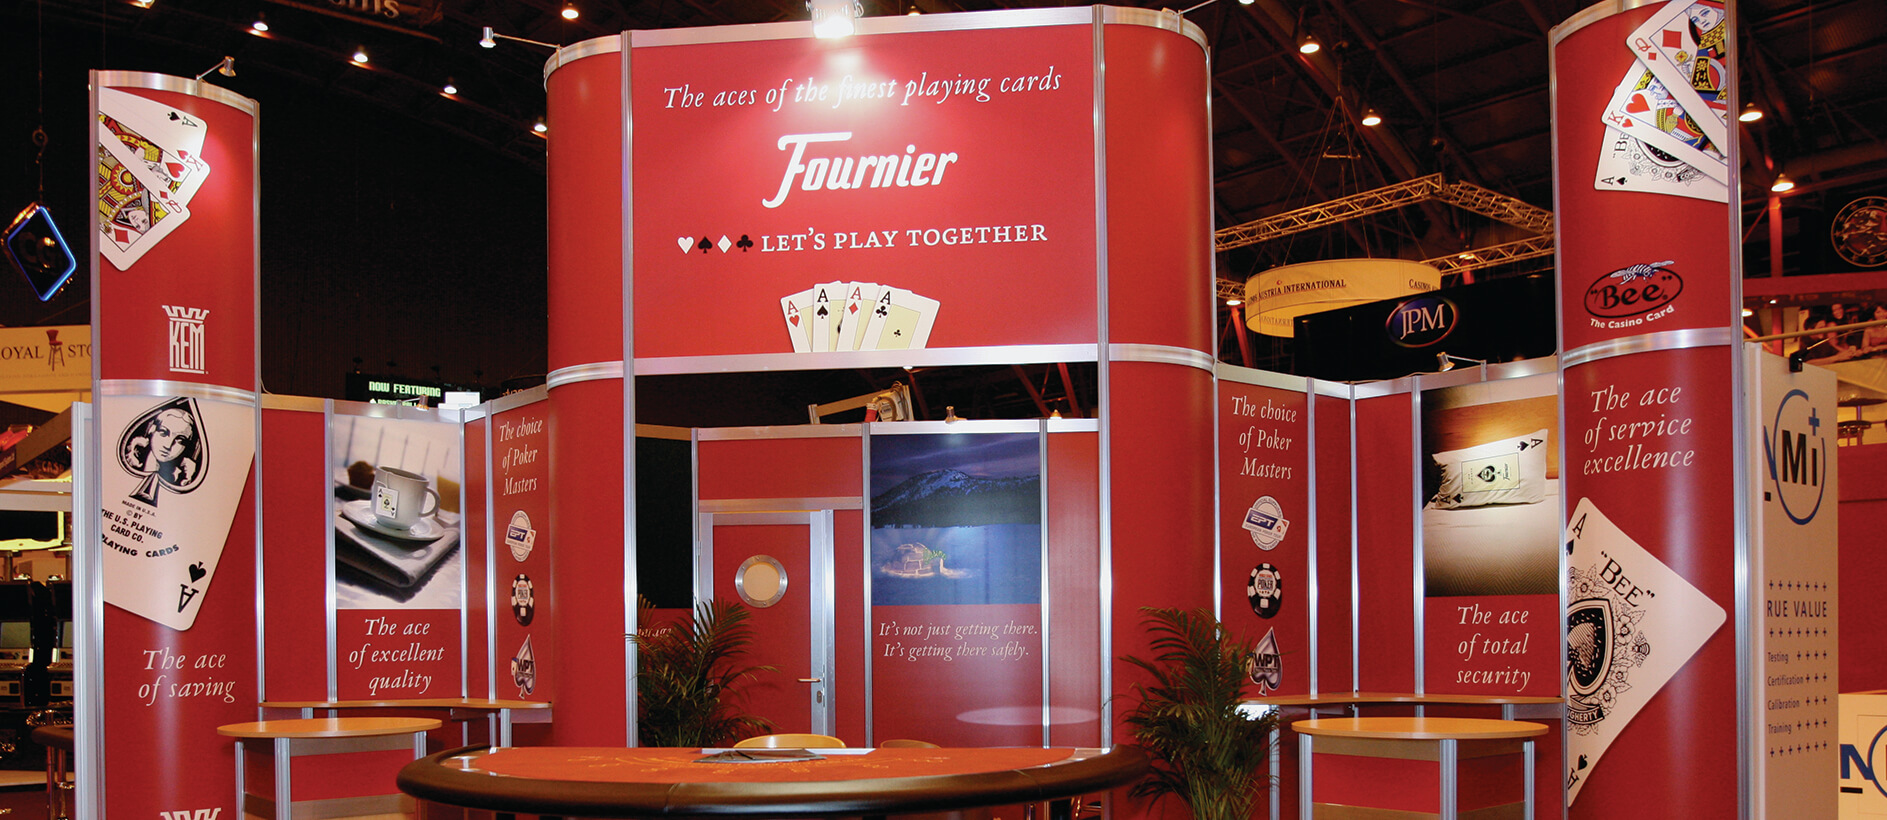 modular display for Fournier by Exhibit 3Sixty